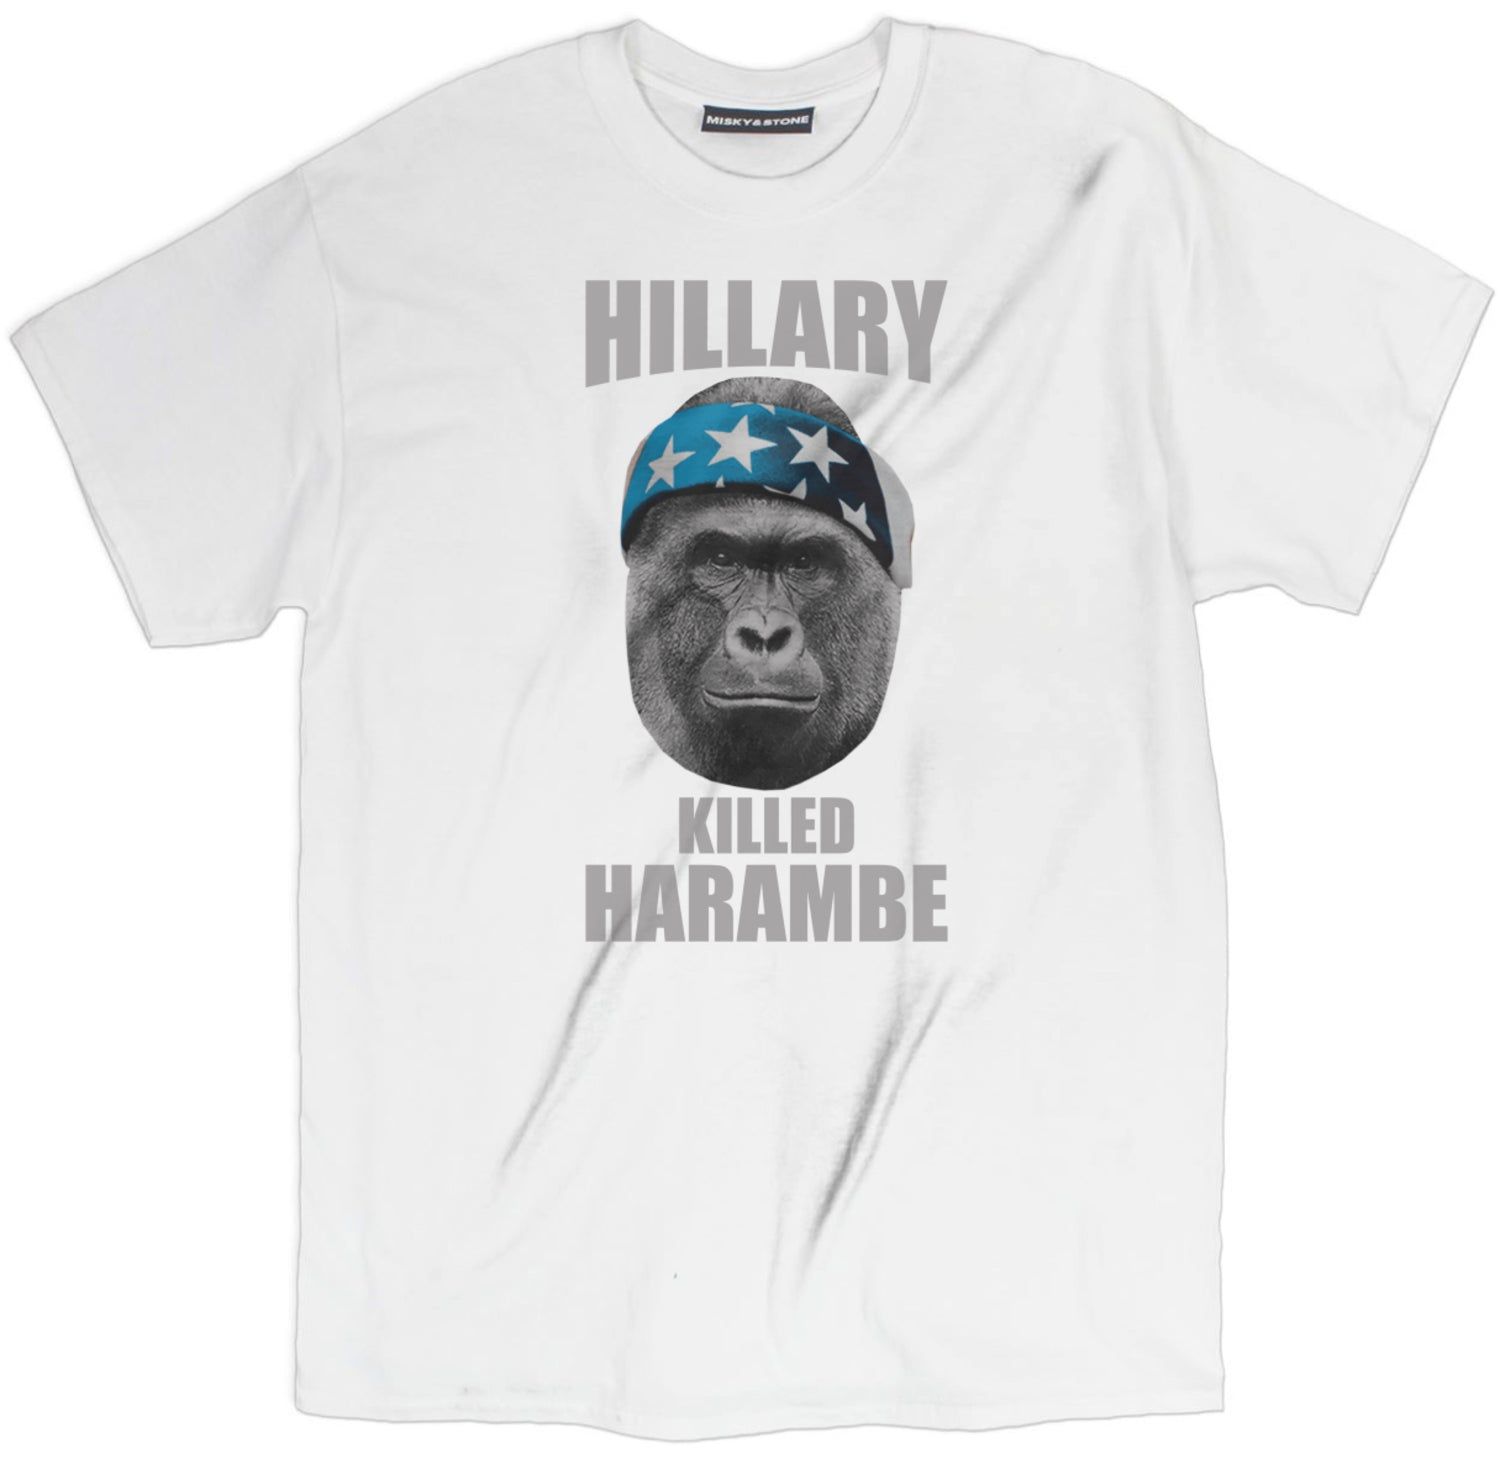 Hillary Killed Harambe Tee